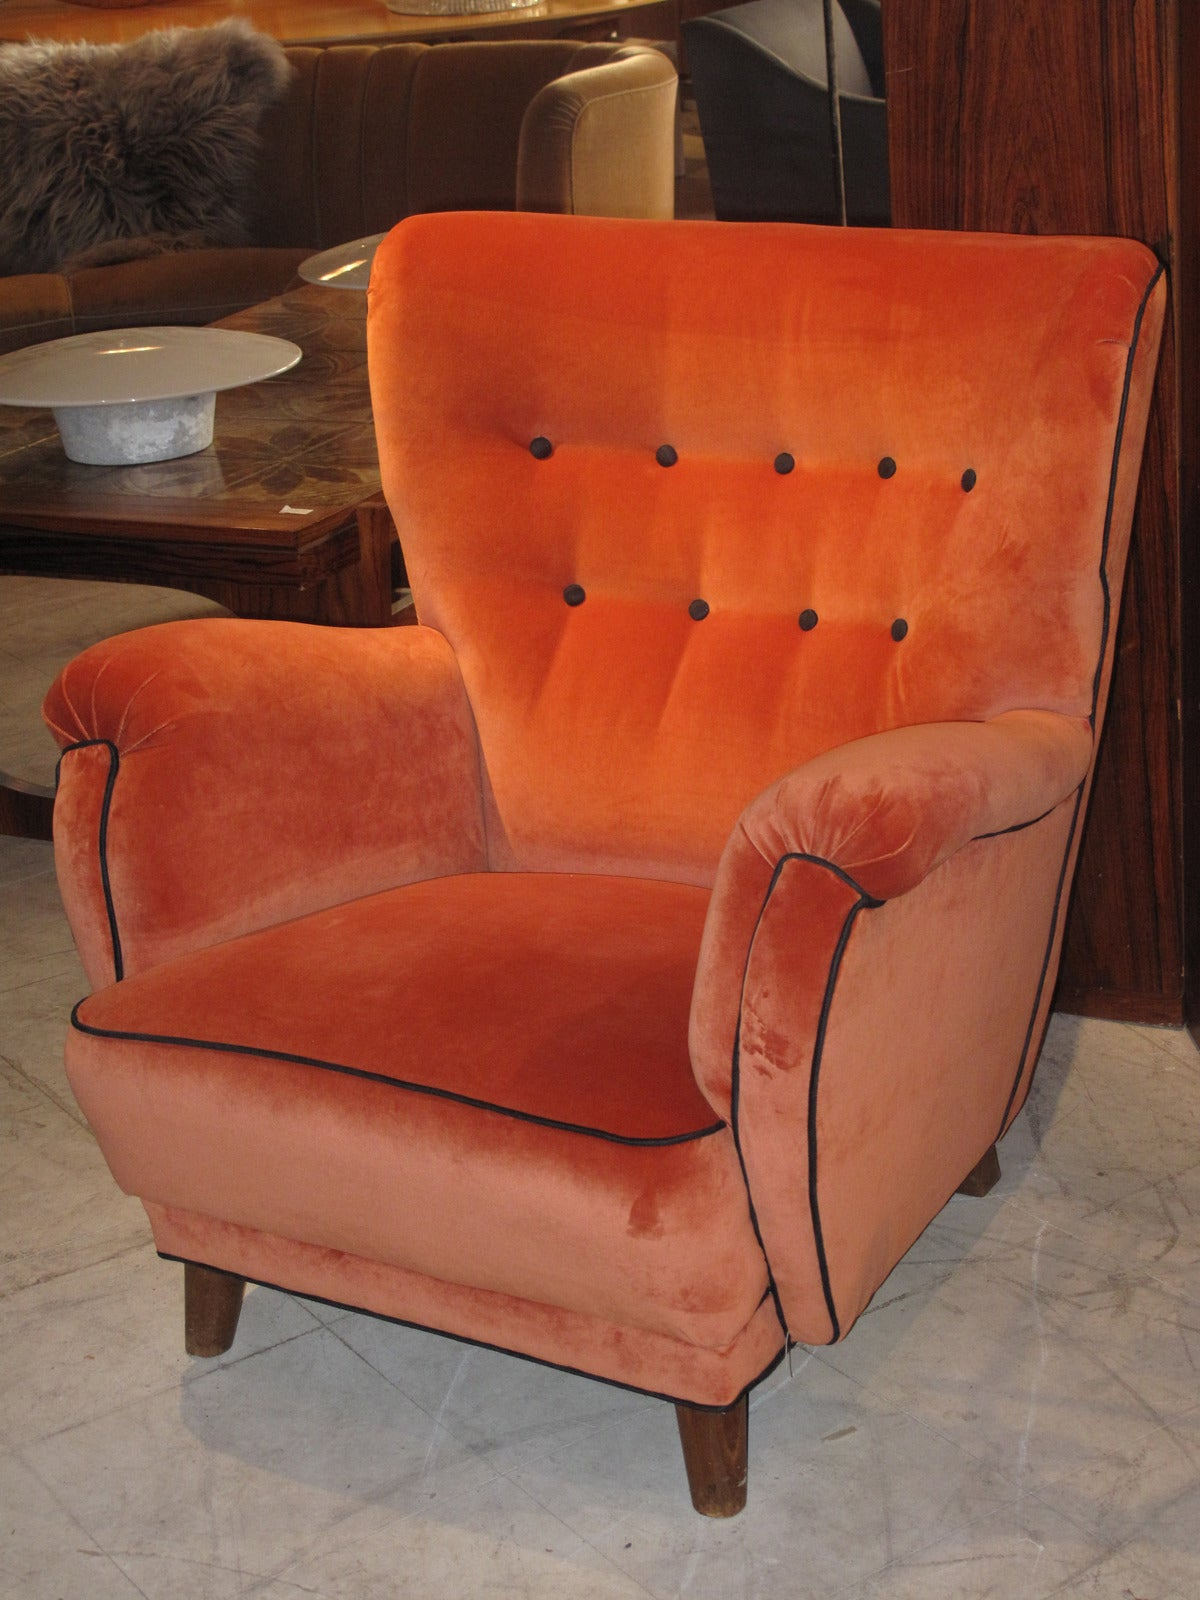 Danish 1940s large-scale club chair upholstered in orange velvet with black trim and button accents.